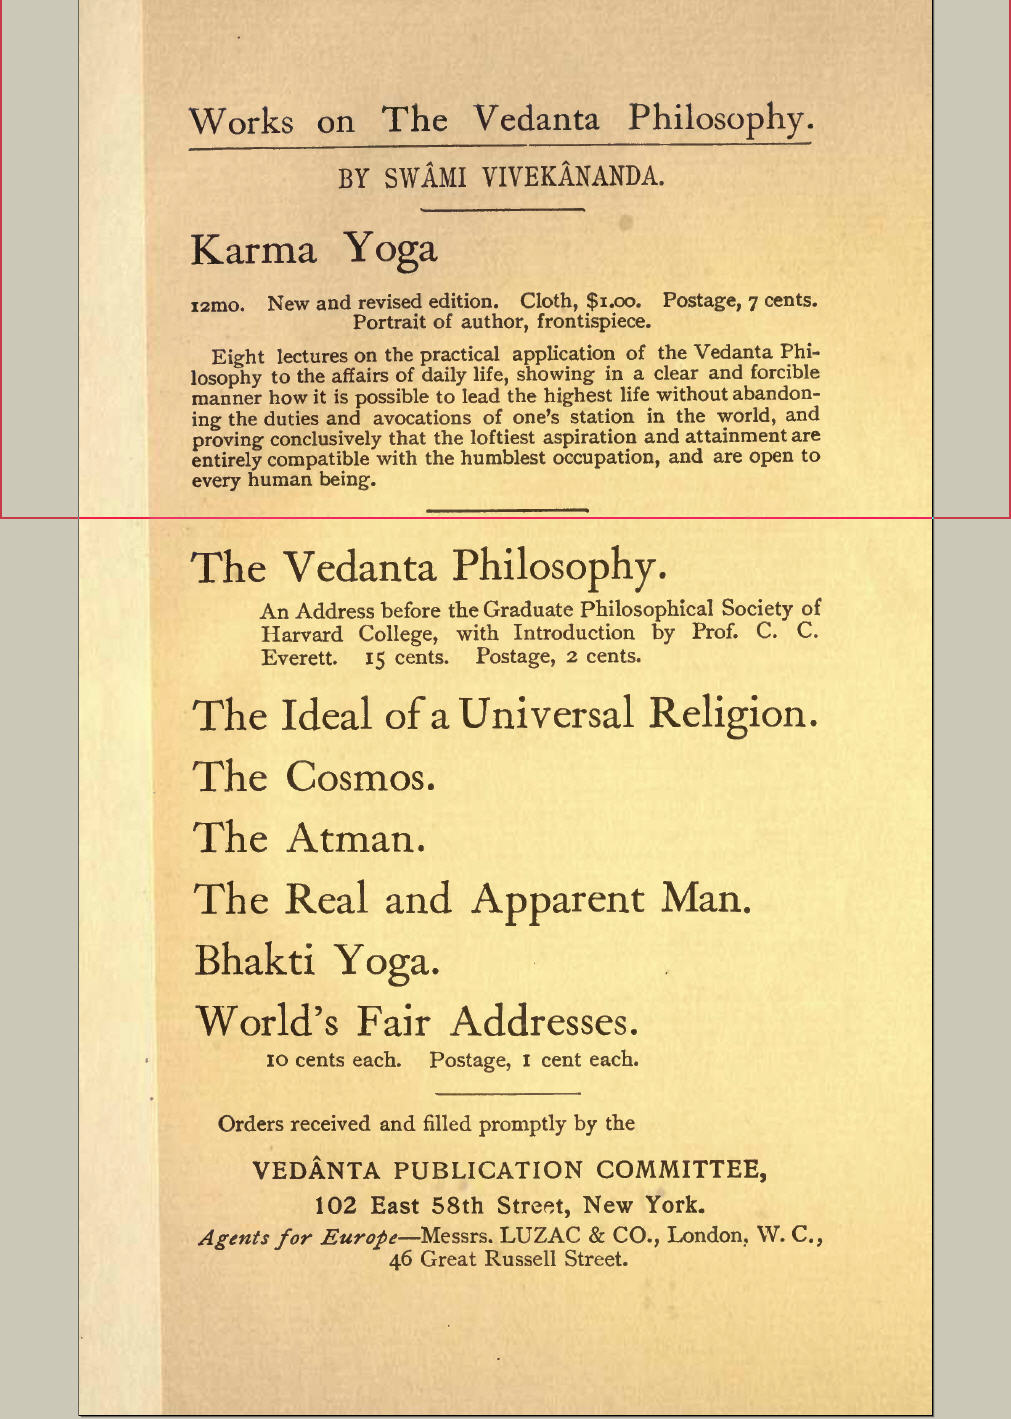 library online frank parlato jr the unauthorized edward sturdy edition of s bhakti yoga later drawn from circulation at s behest